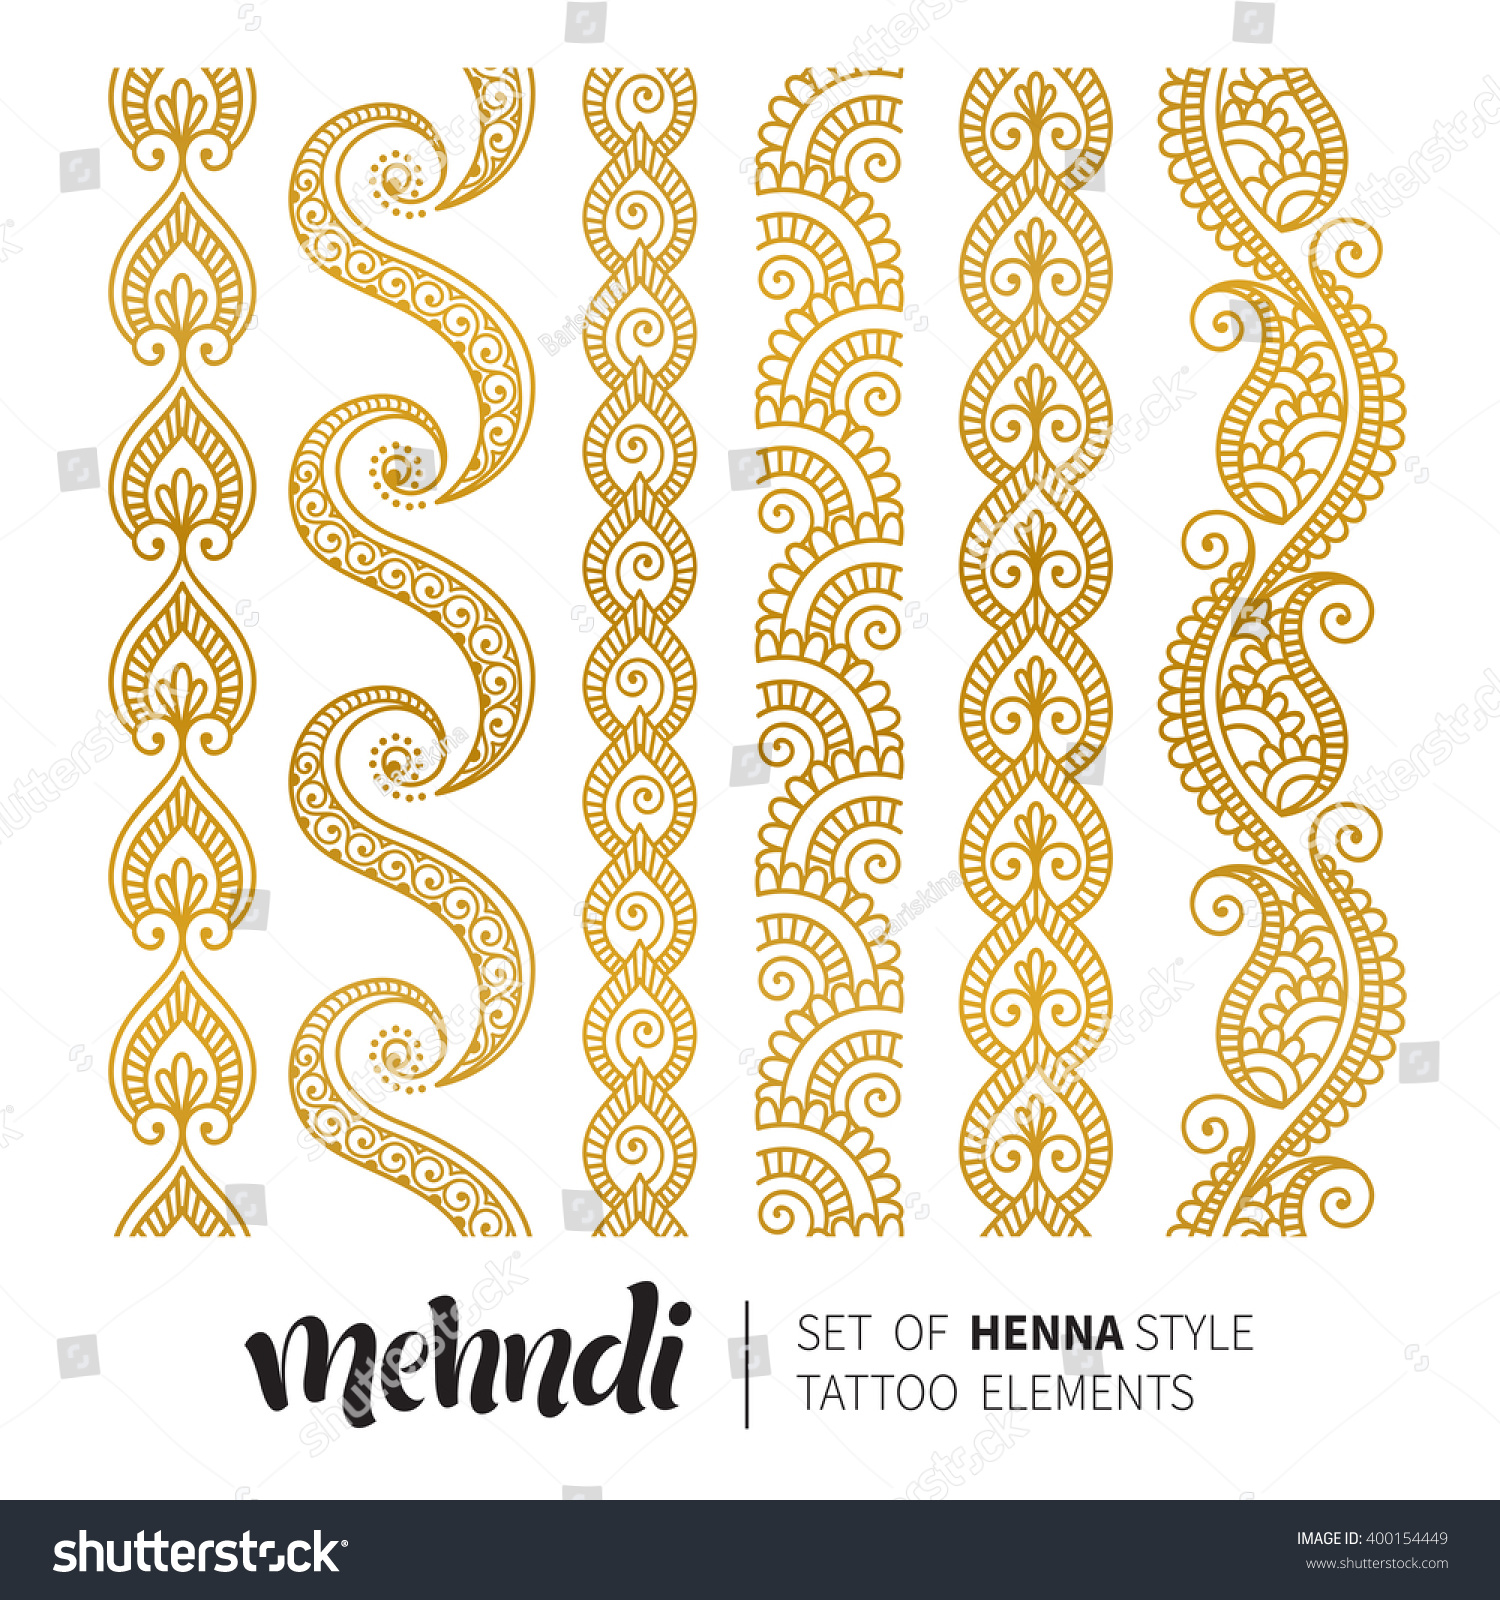 Vintage elements and borders set for ornate and decoration stock - Vector Illustration Gold Mehndi Pattern Set Stock Vector